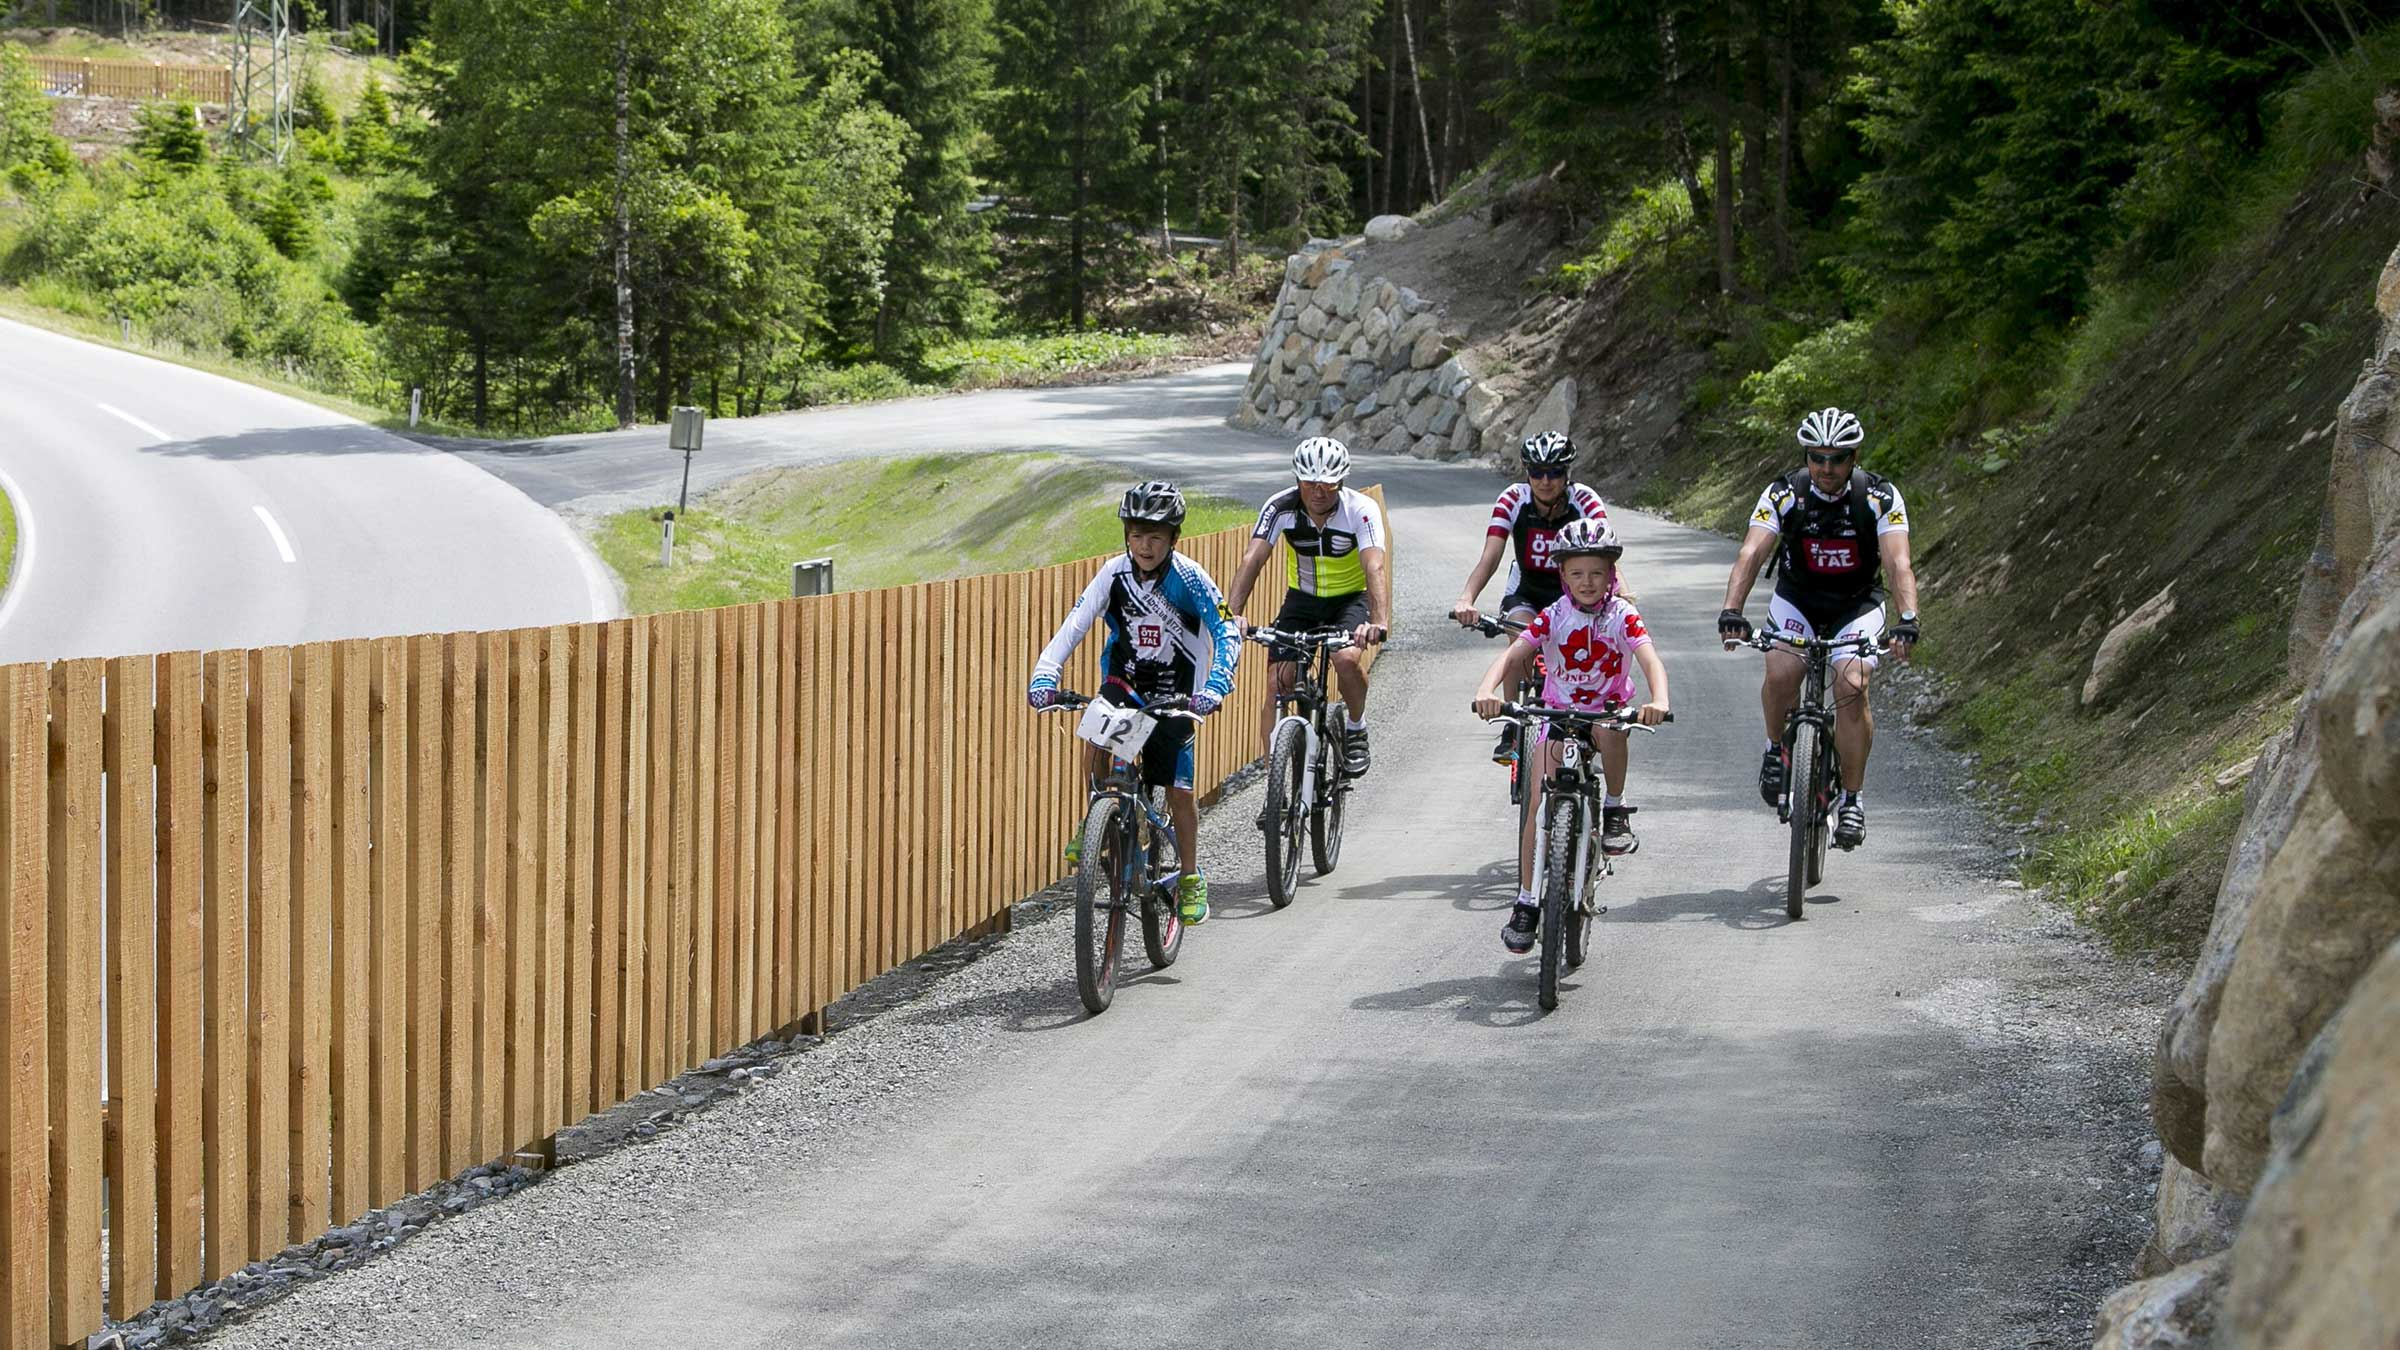 Valley-wide cycling on safe paths: Ötztal Cycle Trail